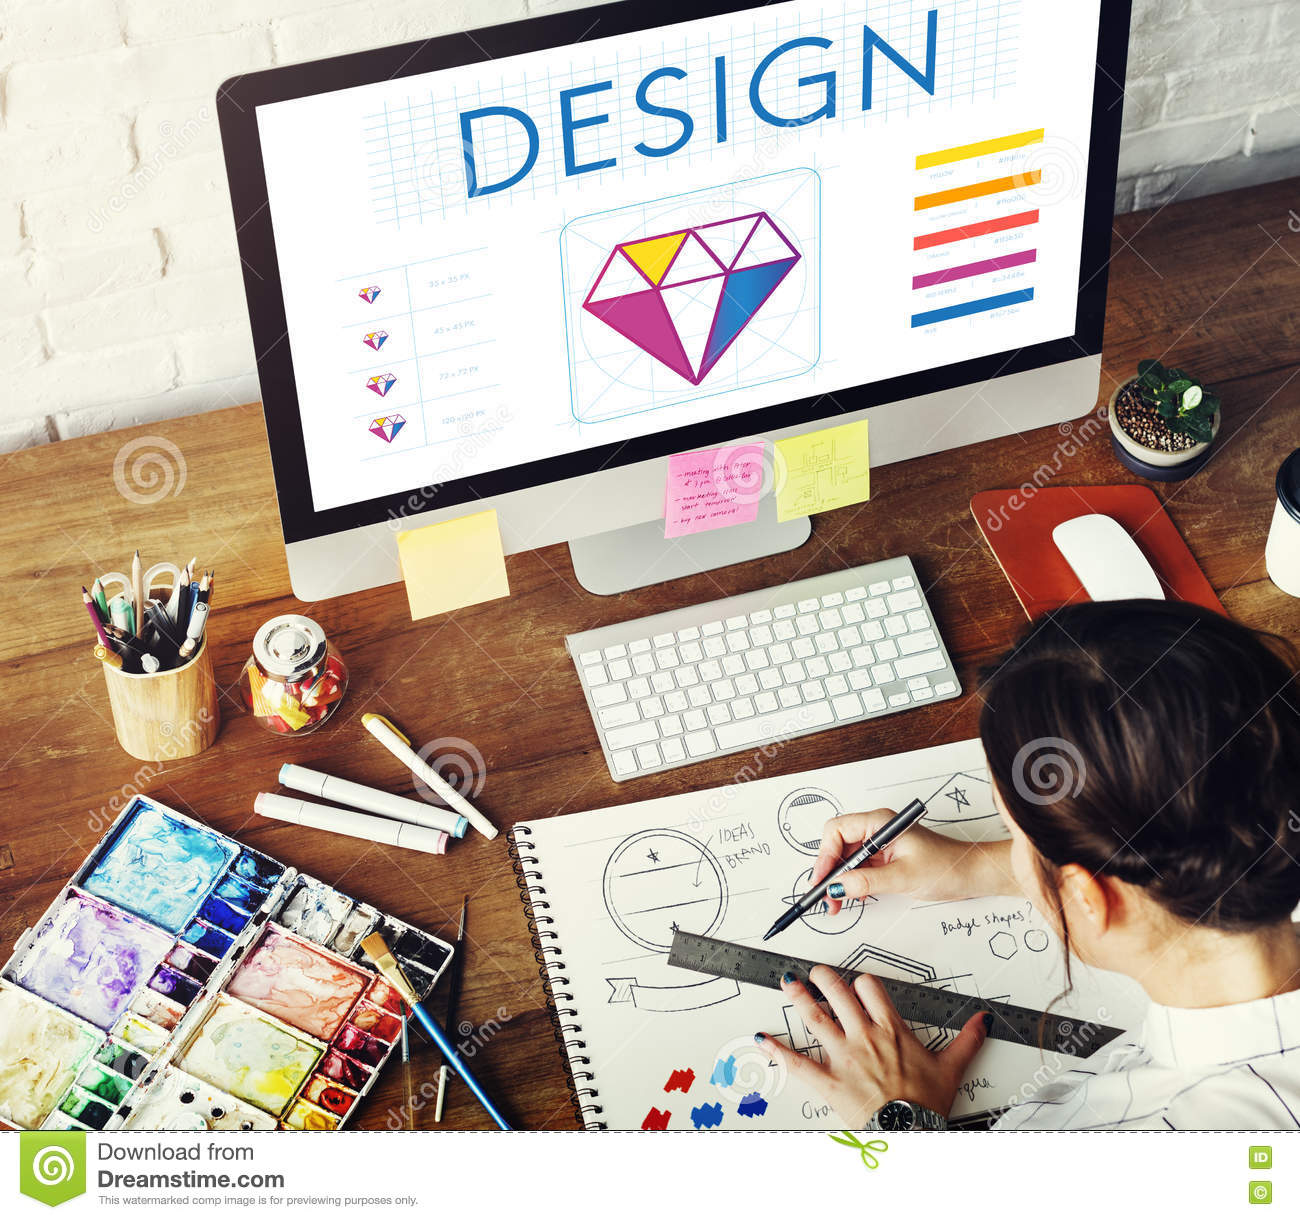 Graphic Design Creative Imagination Concept Stock Image Image Of Desk Illustration 76833027,Best Mousetrap Car Designs For Distance And Speed